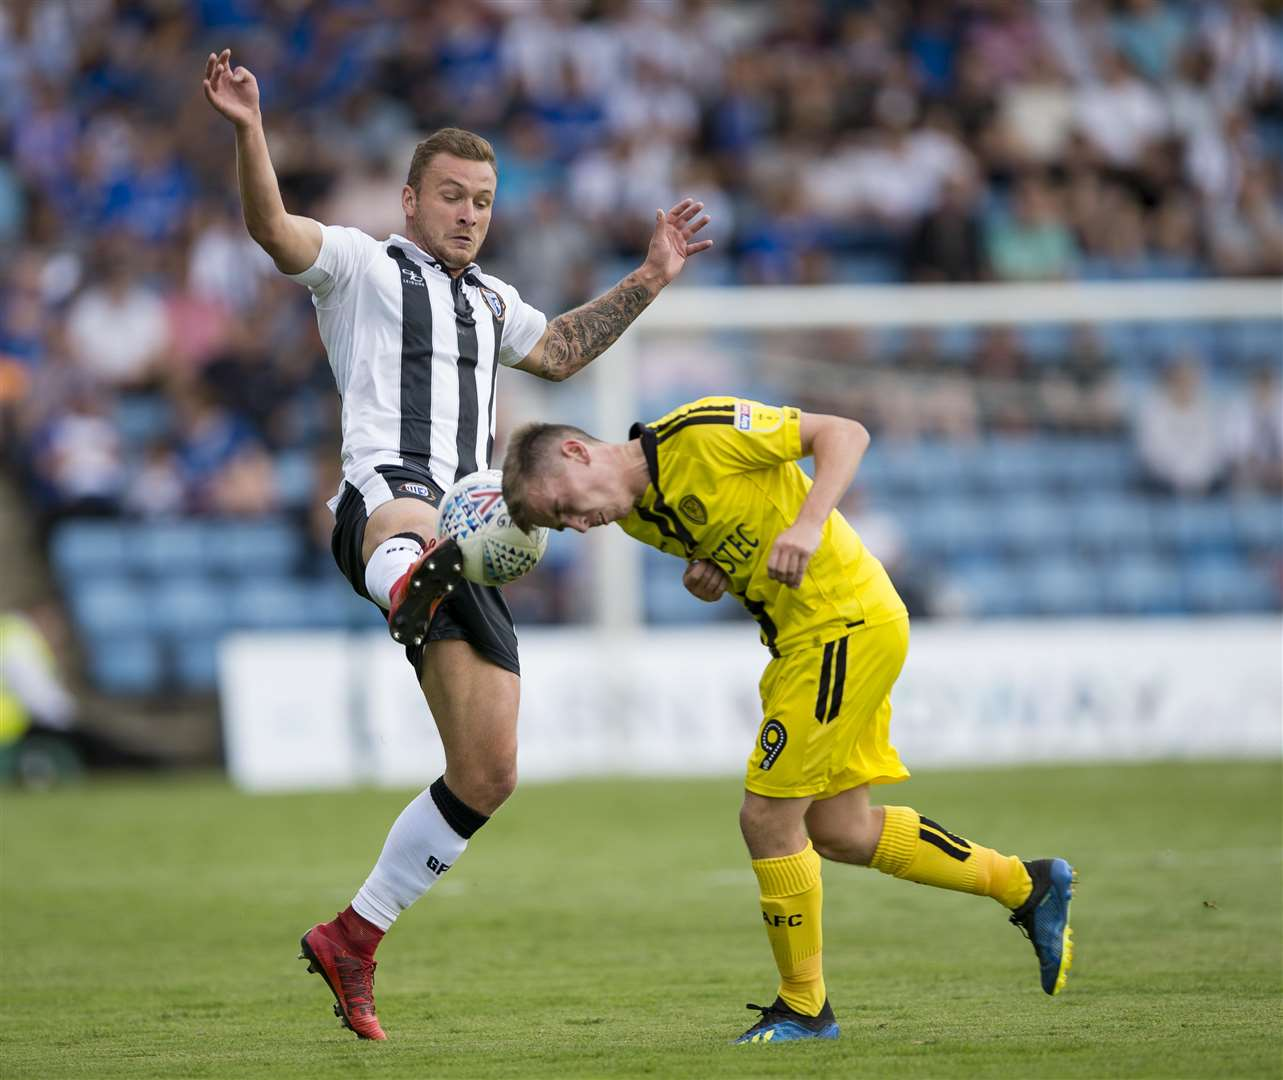 Gillingham's Dean Parrett challenges with Burton's Joe Sbarra. Picture: Ady Kerry